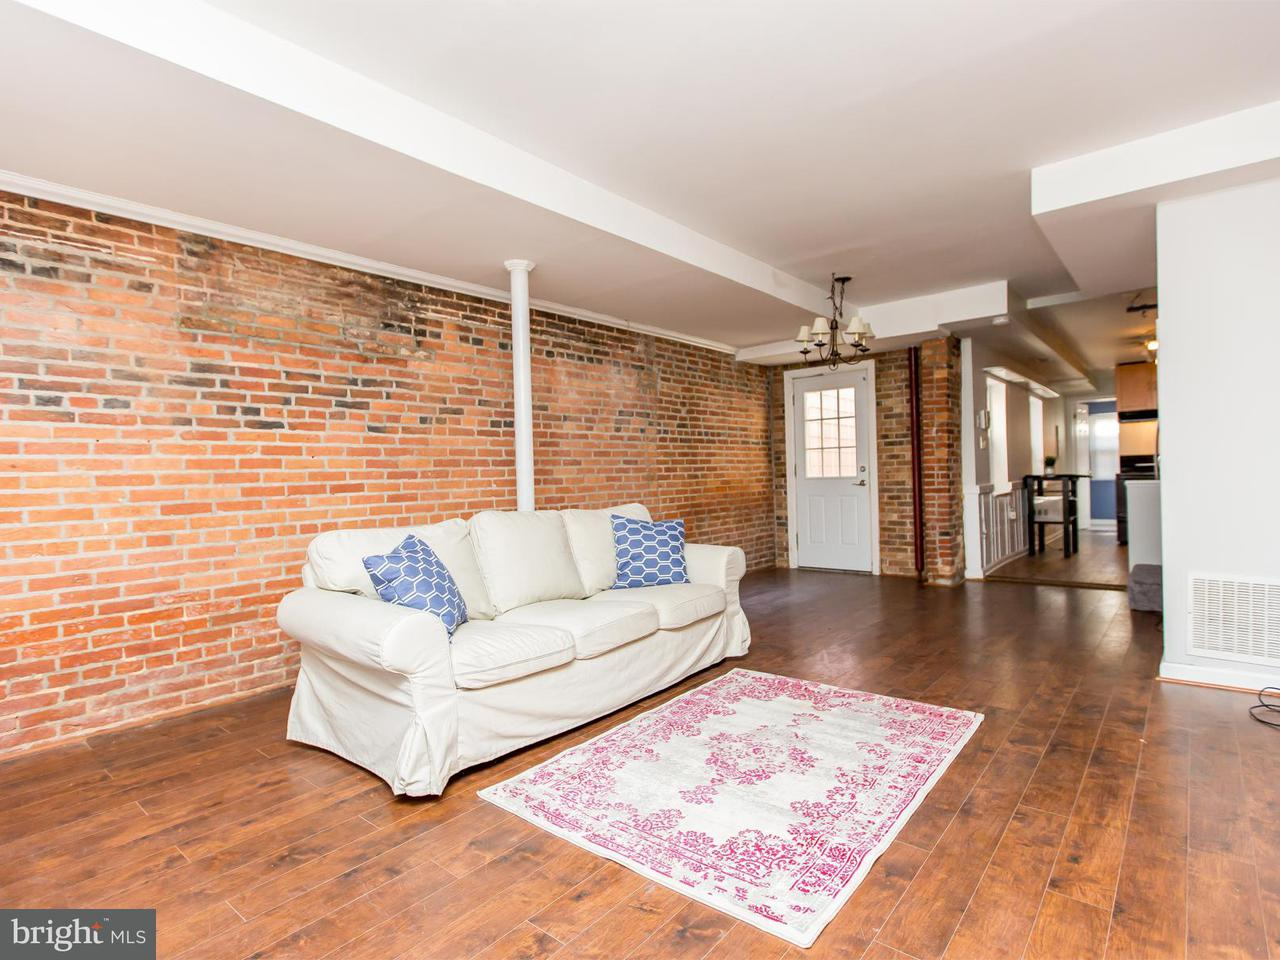 Other Residential for Rent at 1807 Bank St Baltimore, Maryland 21231 United States